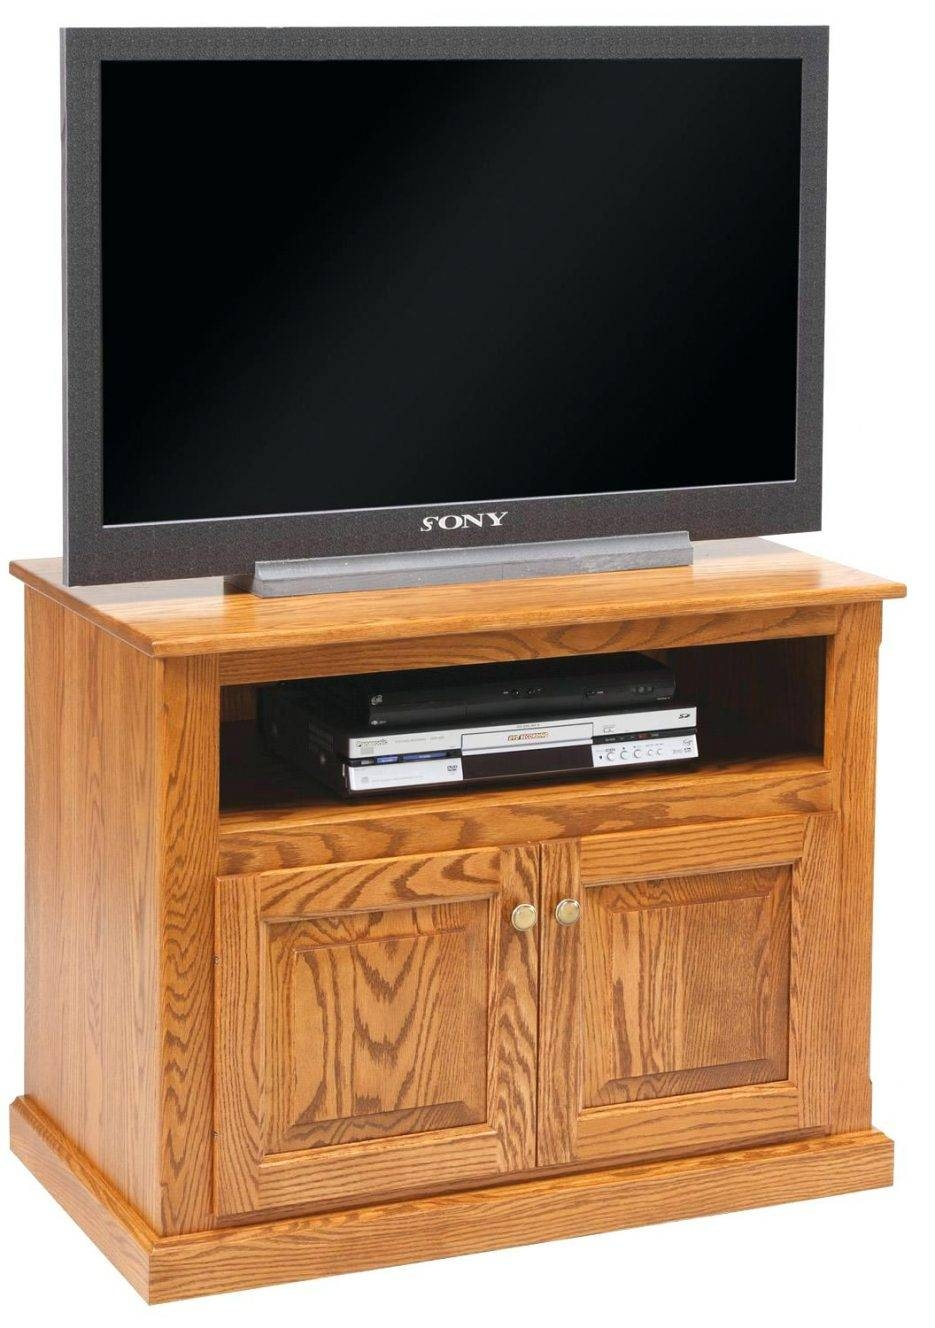 Tv Stand : 147 Image Of Red Rustic Tv Stand Fascinating Image Of inside Orange Tv Stands (Image 8 of 15)